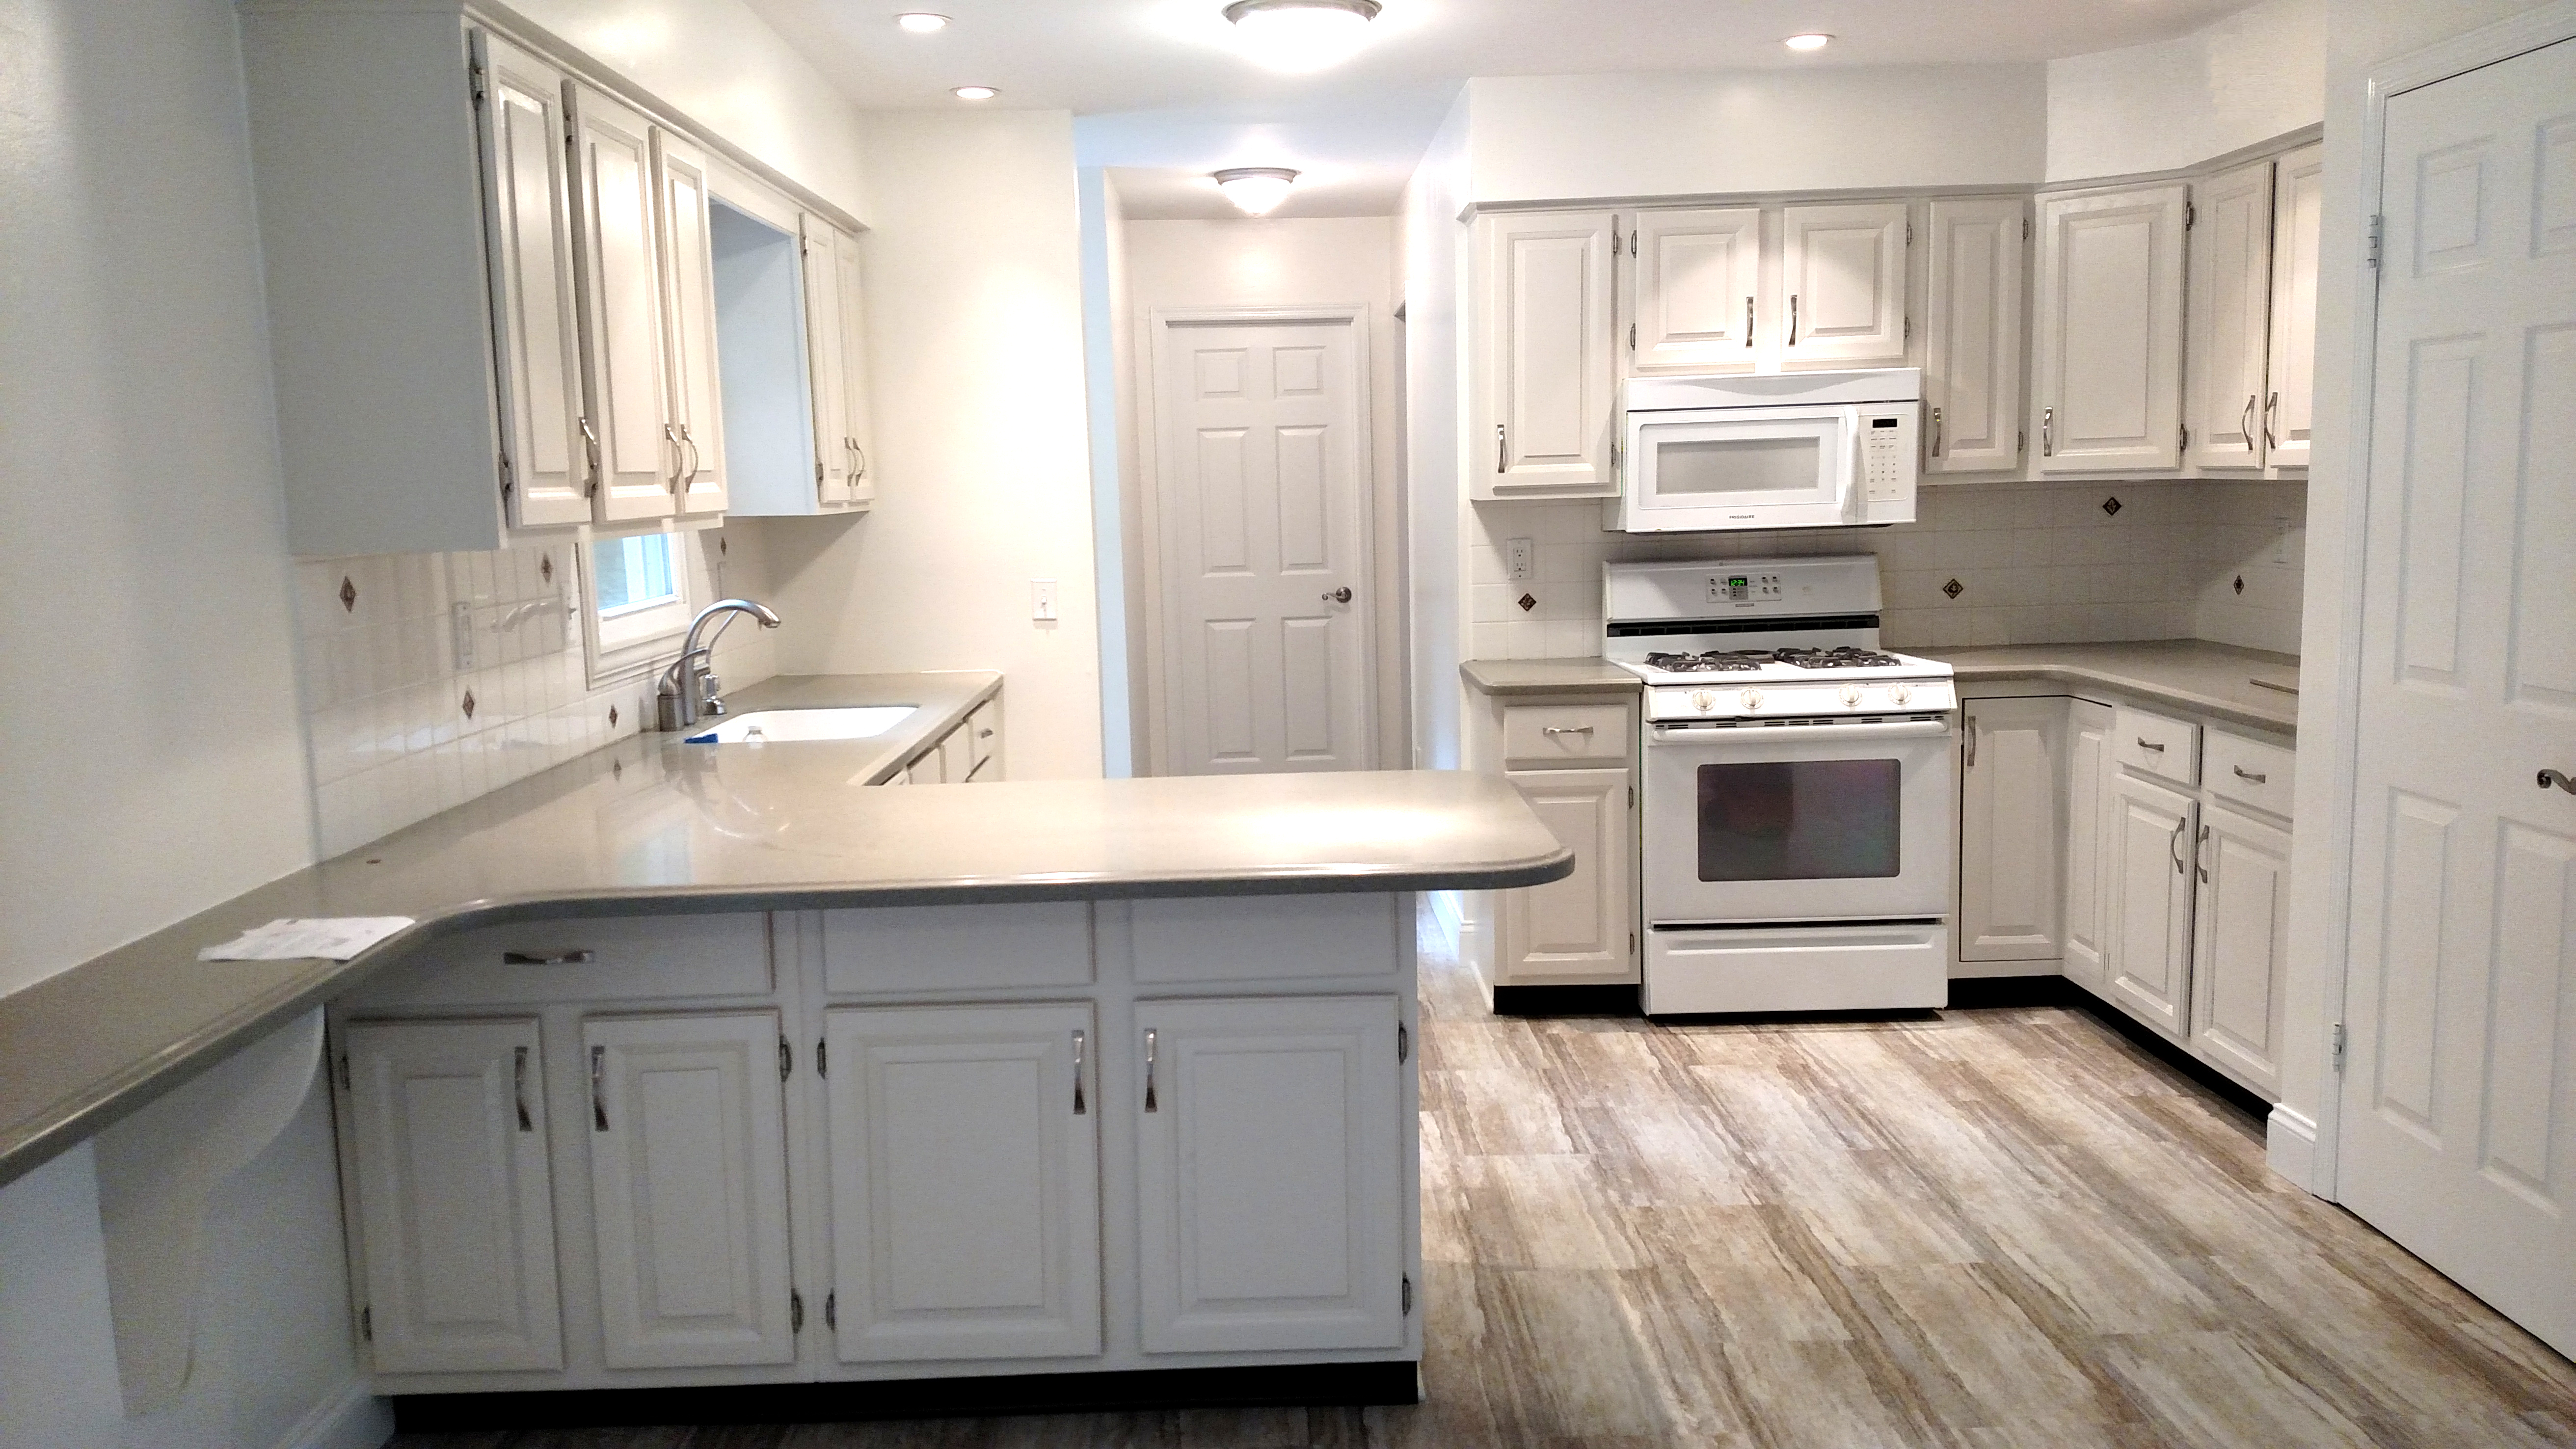 Kitchen Cabinets Refinishing Project Before And After Photos Alexander Painting And Home